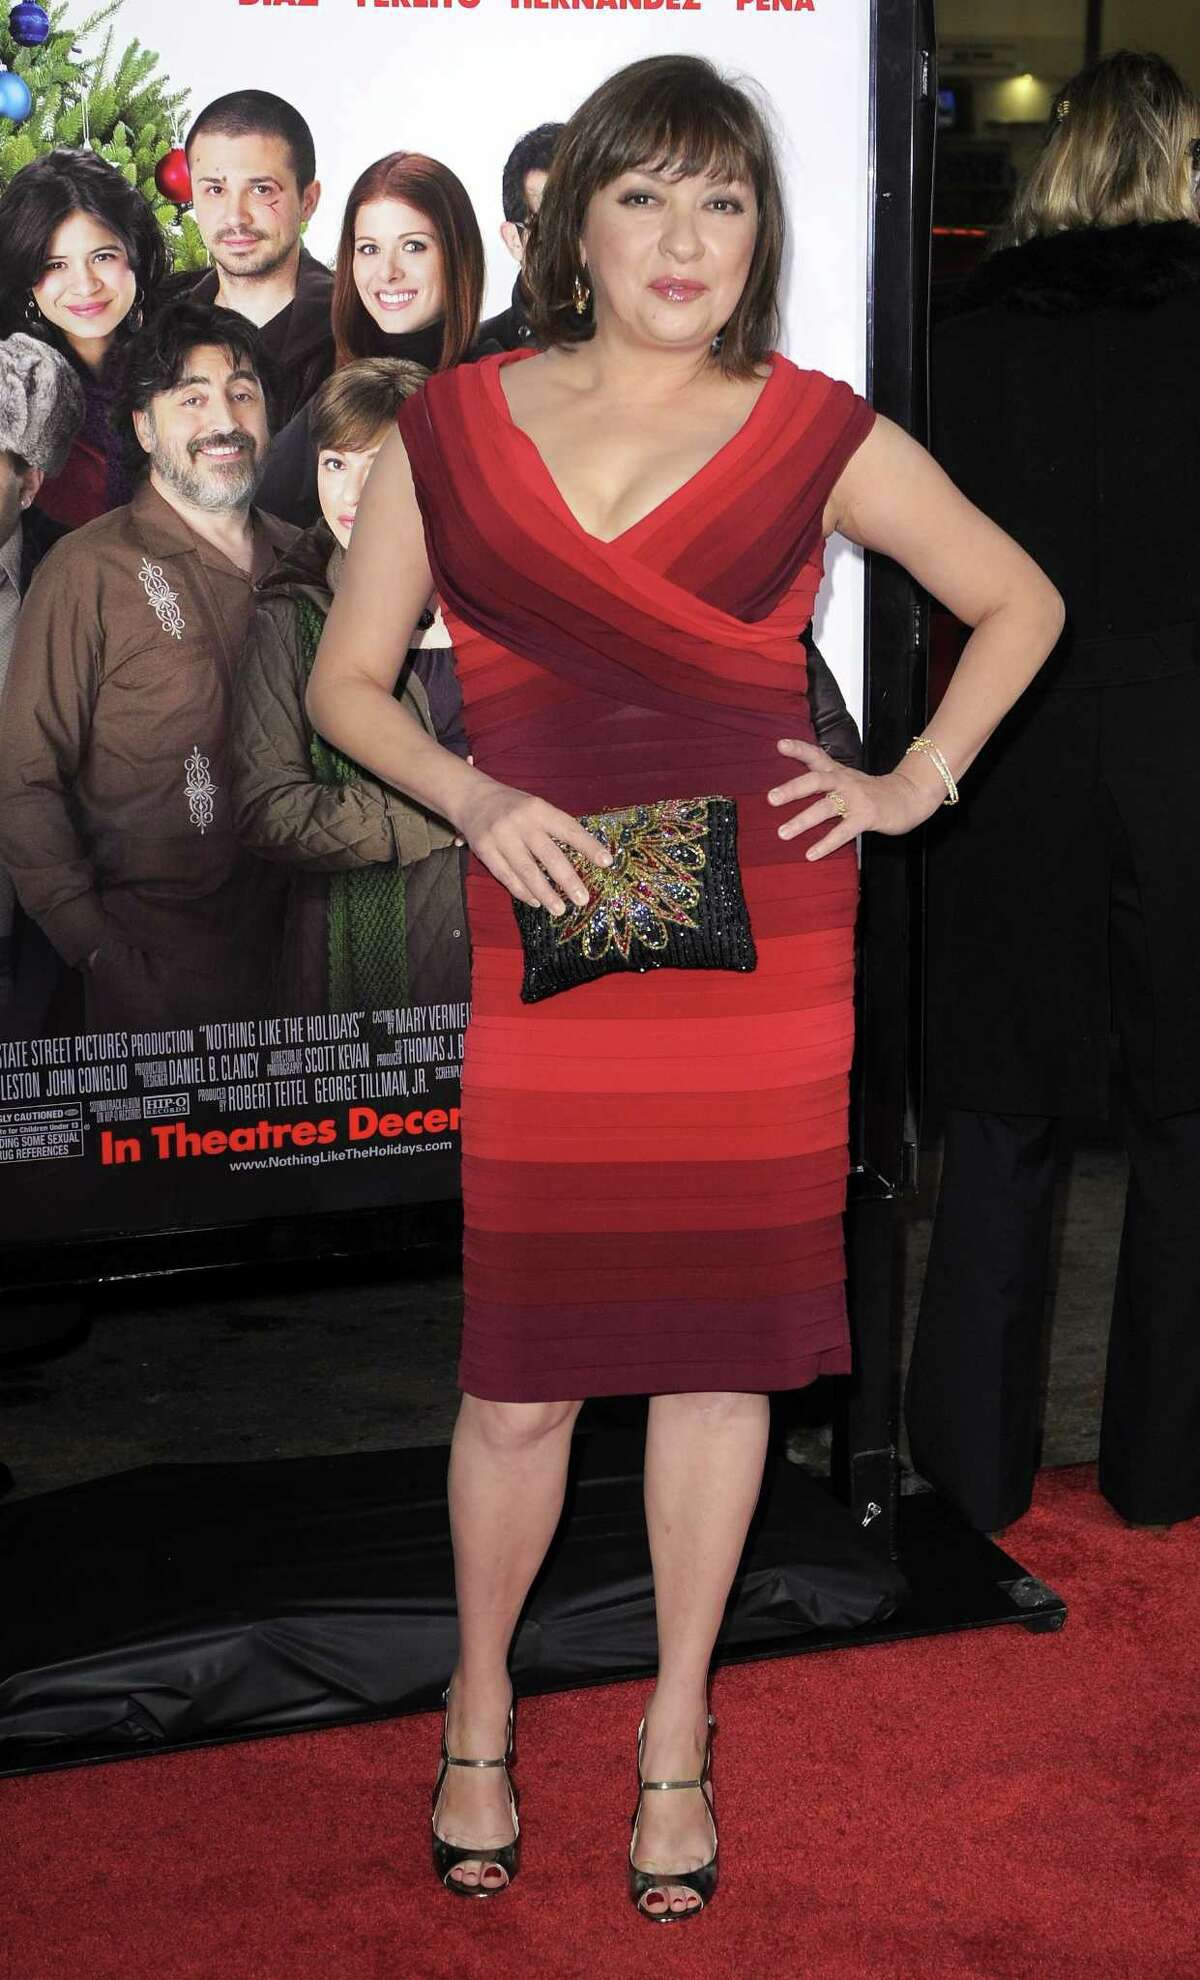 FILE - In this Dec. 3, 2008 file photo, Elizabeth Pena poses as she arrives for the Los Angeles premiere of